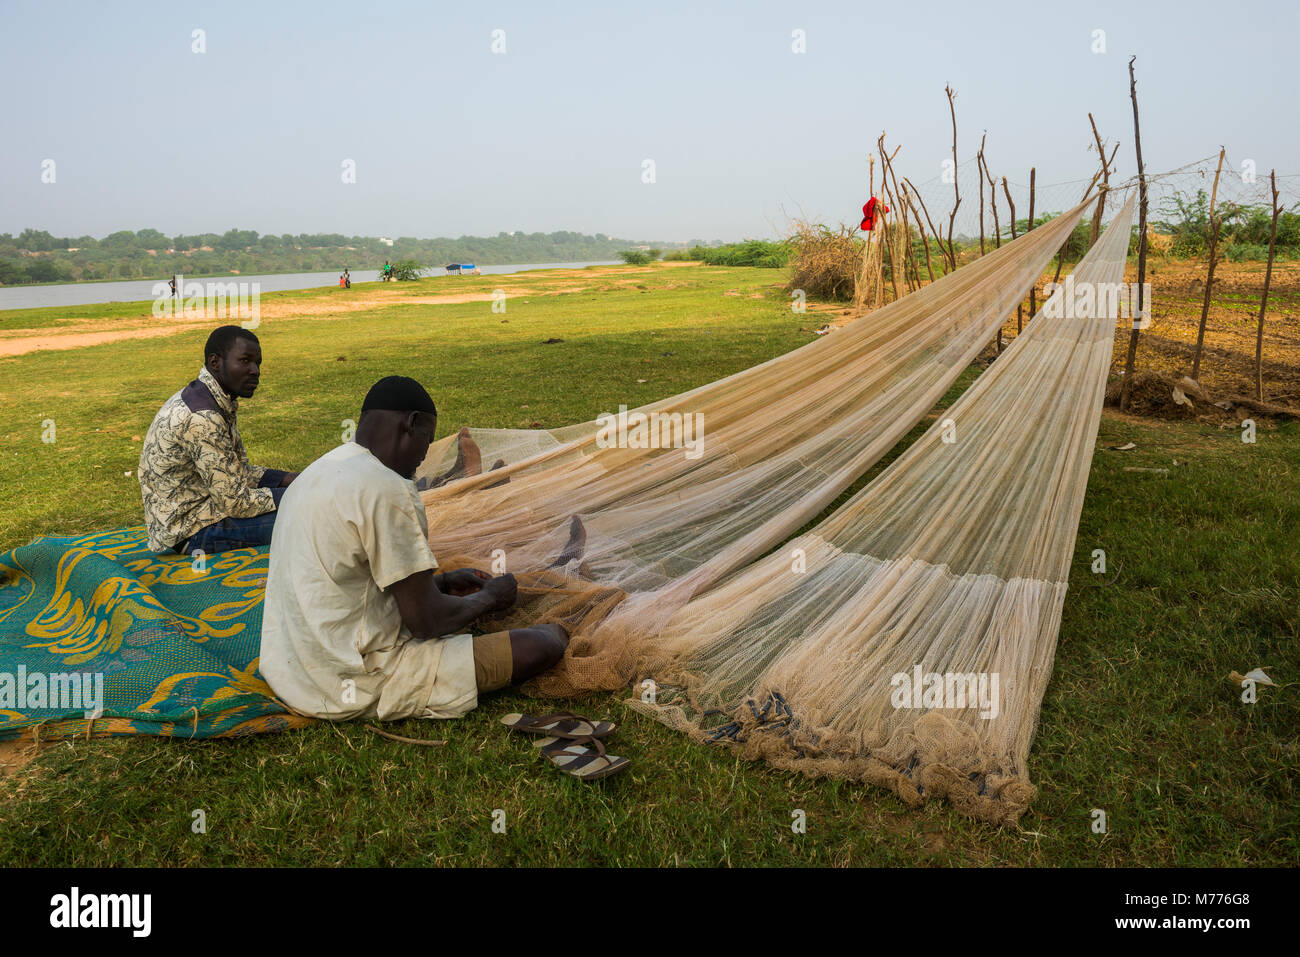 Fishermen repairing their fishing nets on the River Niger, Niamey, Niger, Africa Stock Photo